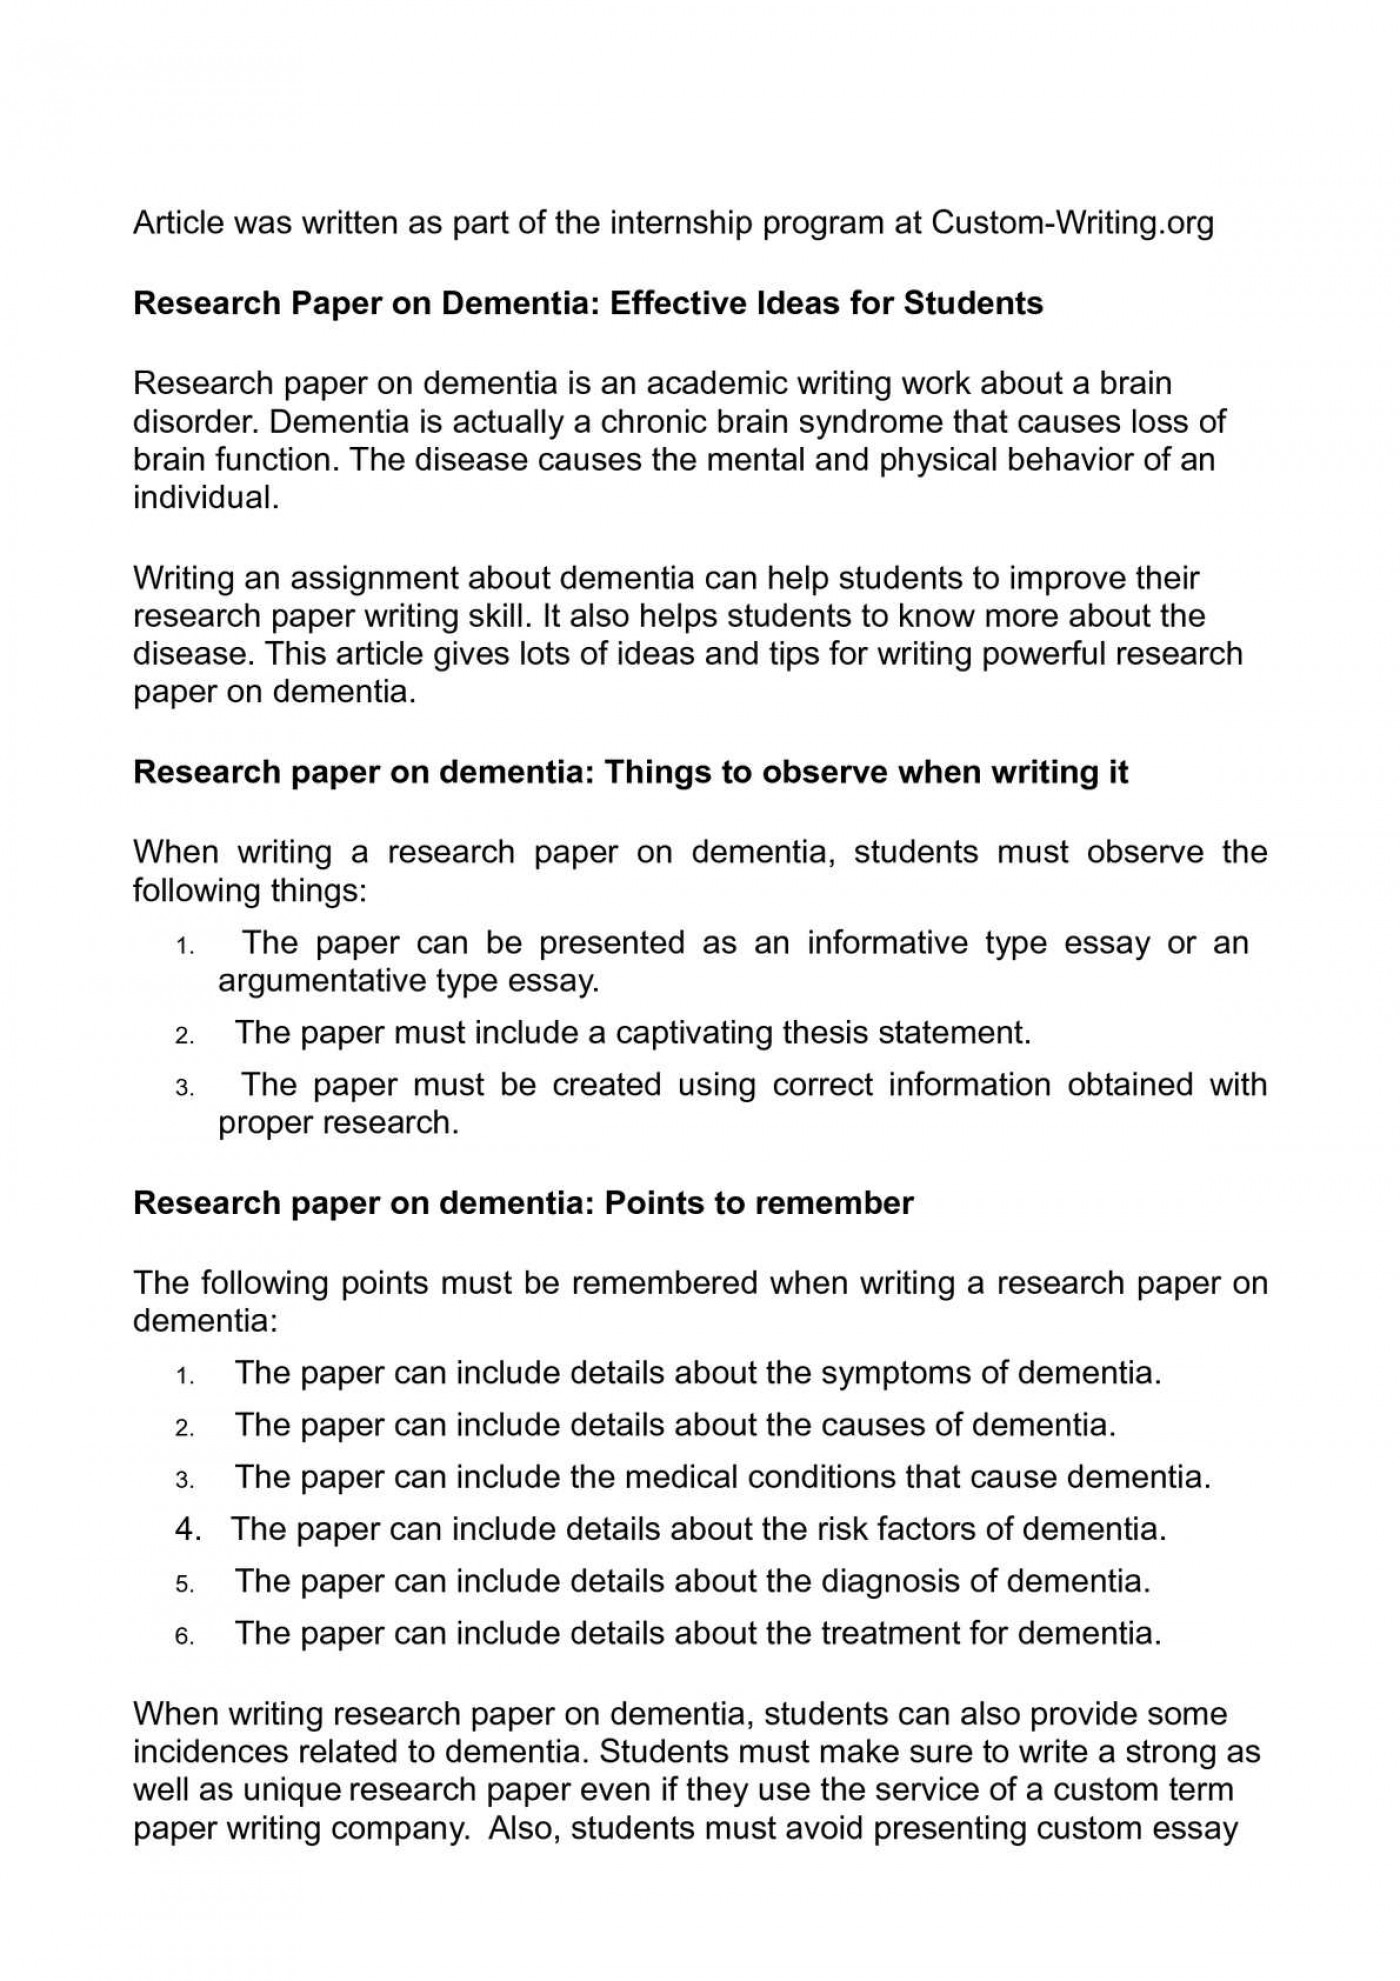 001 P1 Correct Order Of Research Wonderful A Paper Sequence Steps For Writing 1400